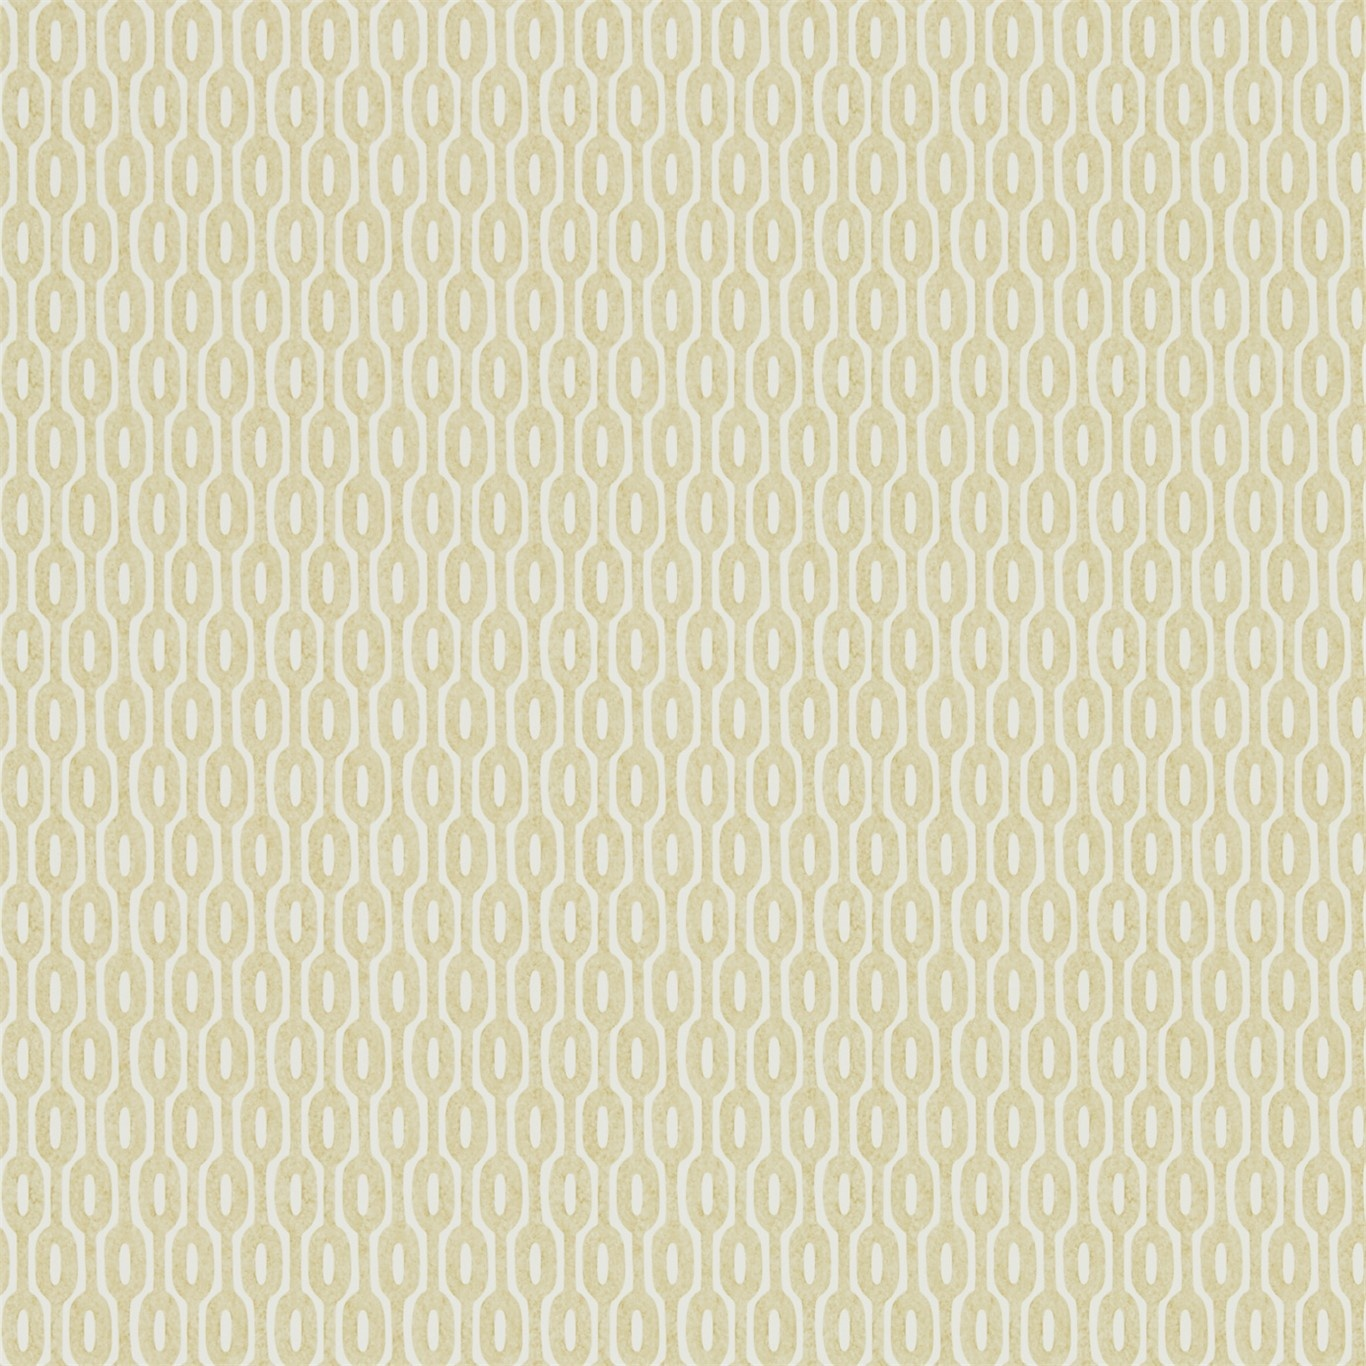 Image of Sanderson Home Hemp Dijon Wallpaper 216367